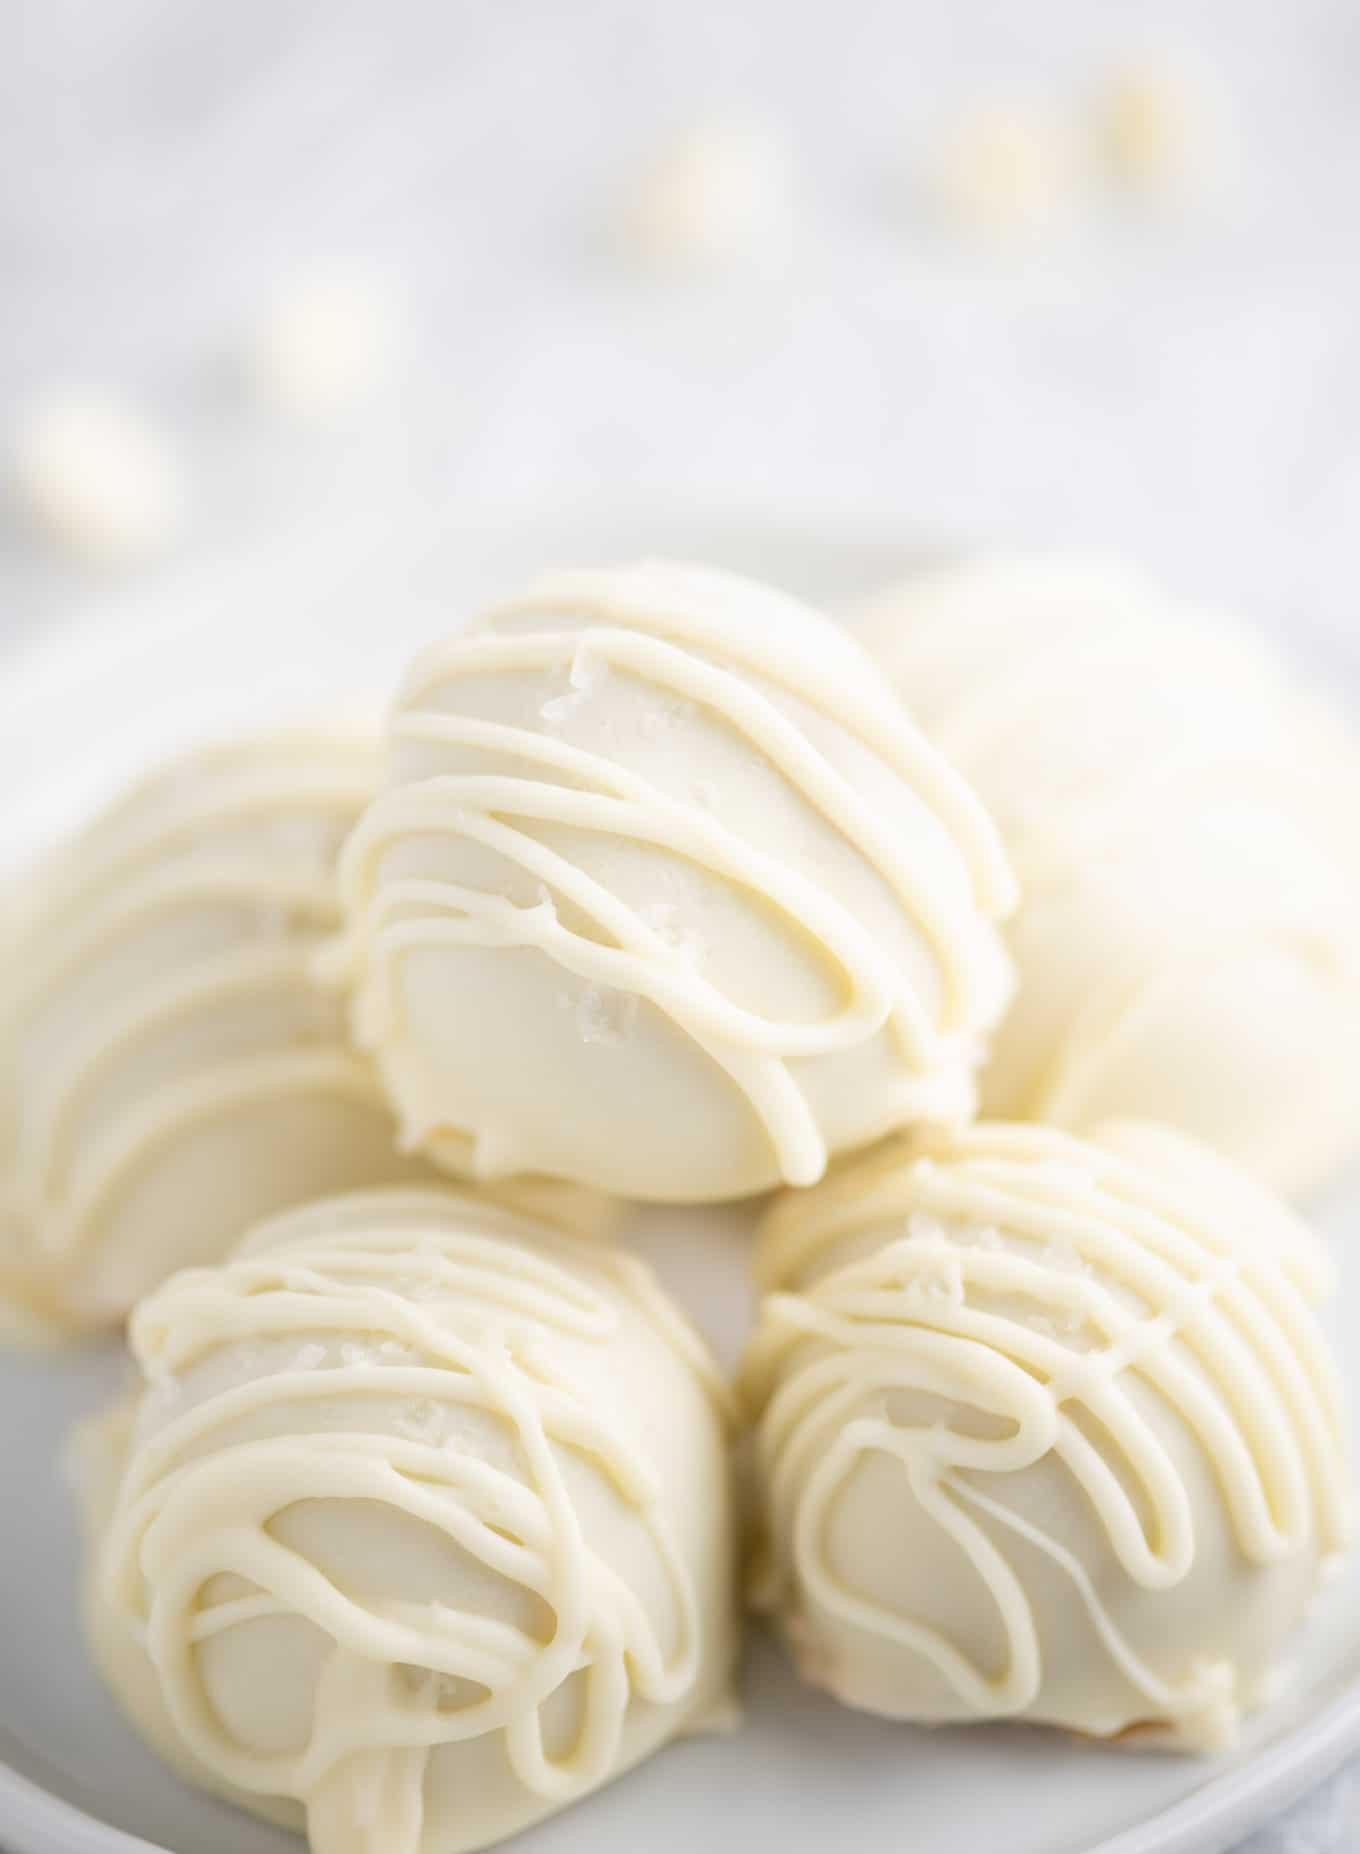 white chocolate peanut butter balls